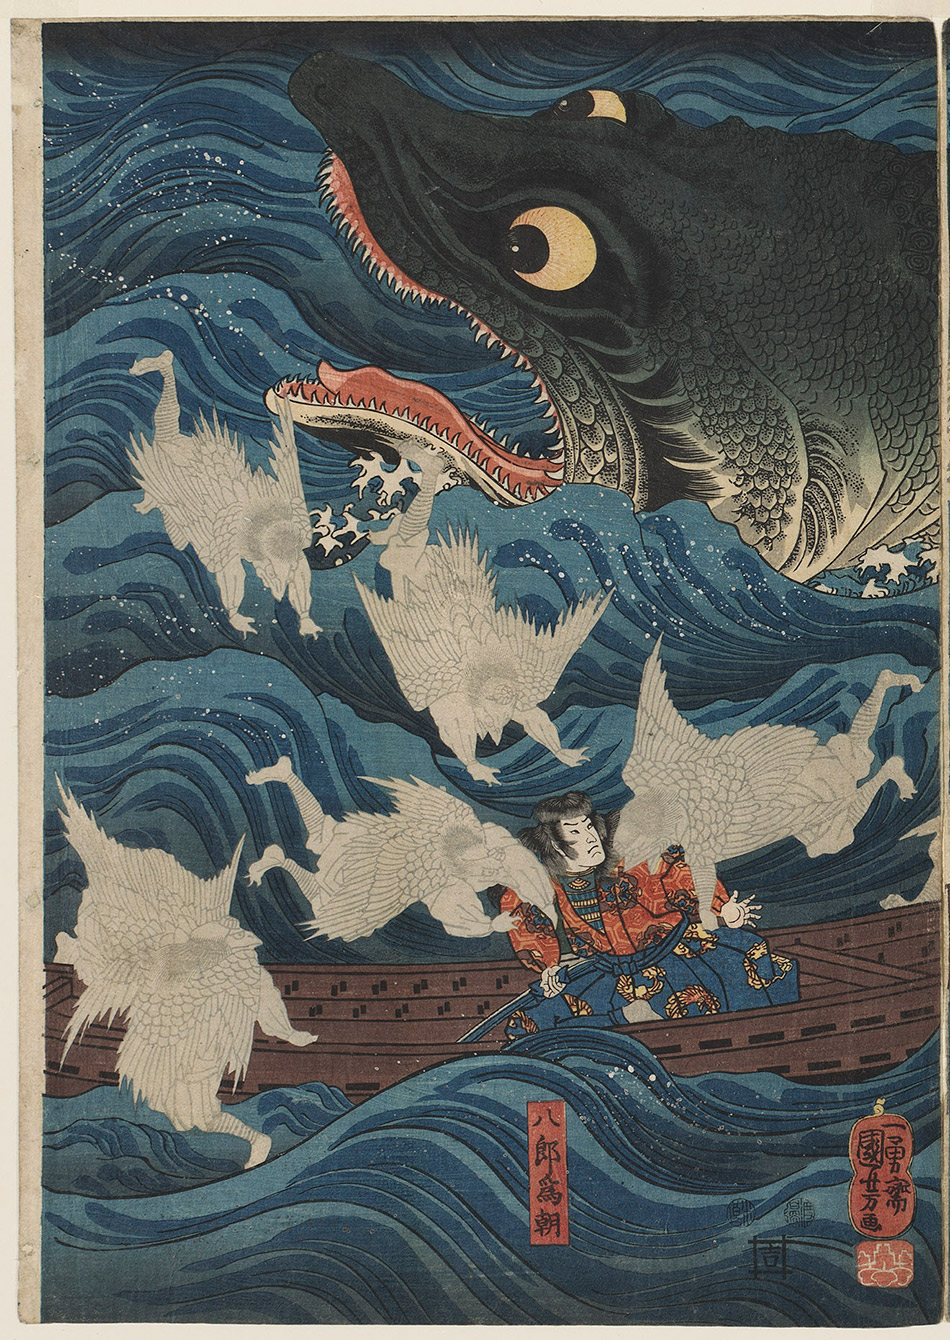 museum of fine arts boston_13-a_The-Former-Emperor-a_Utagawa-Kuniyoshi